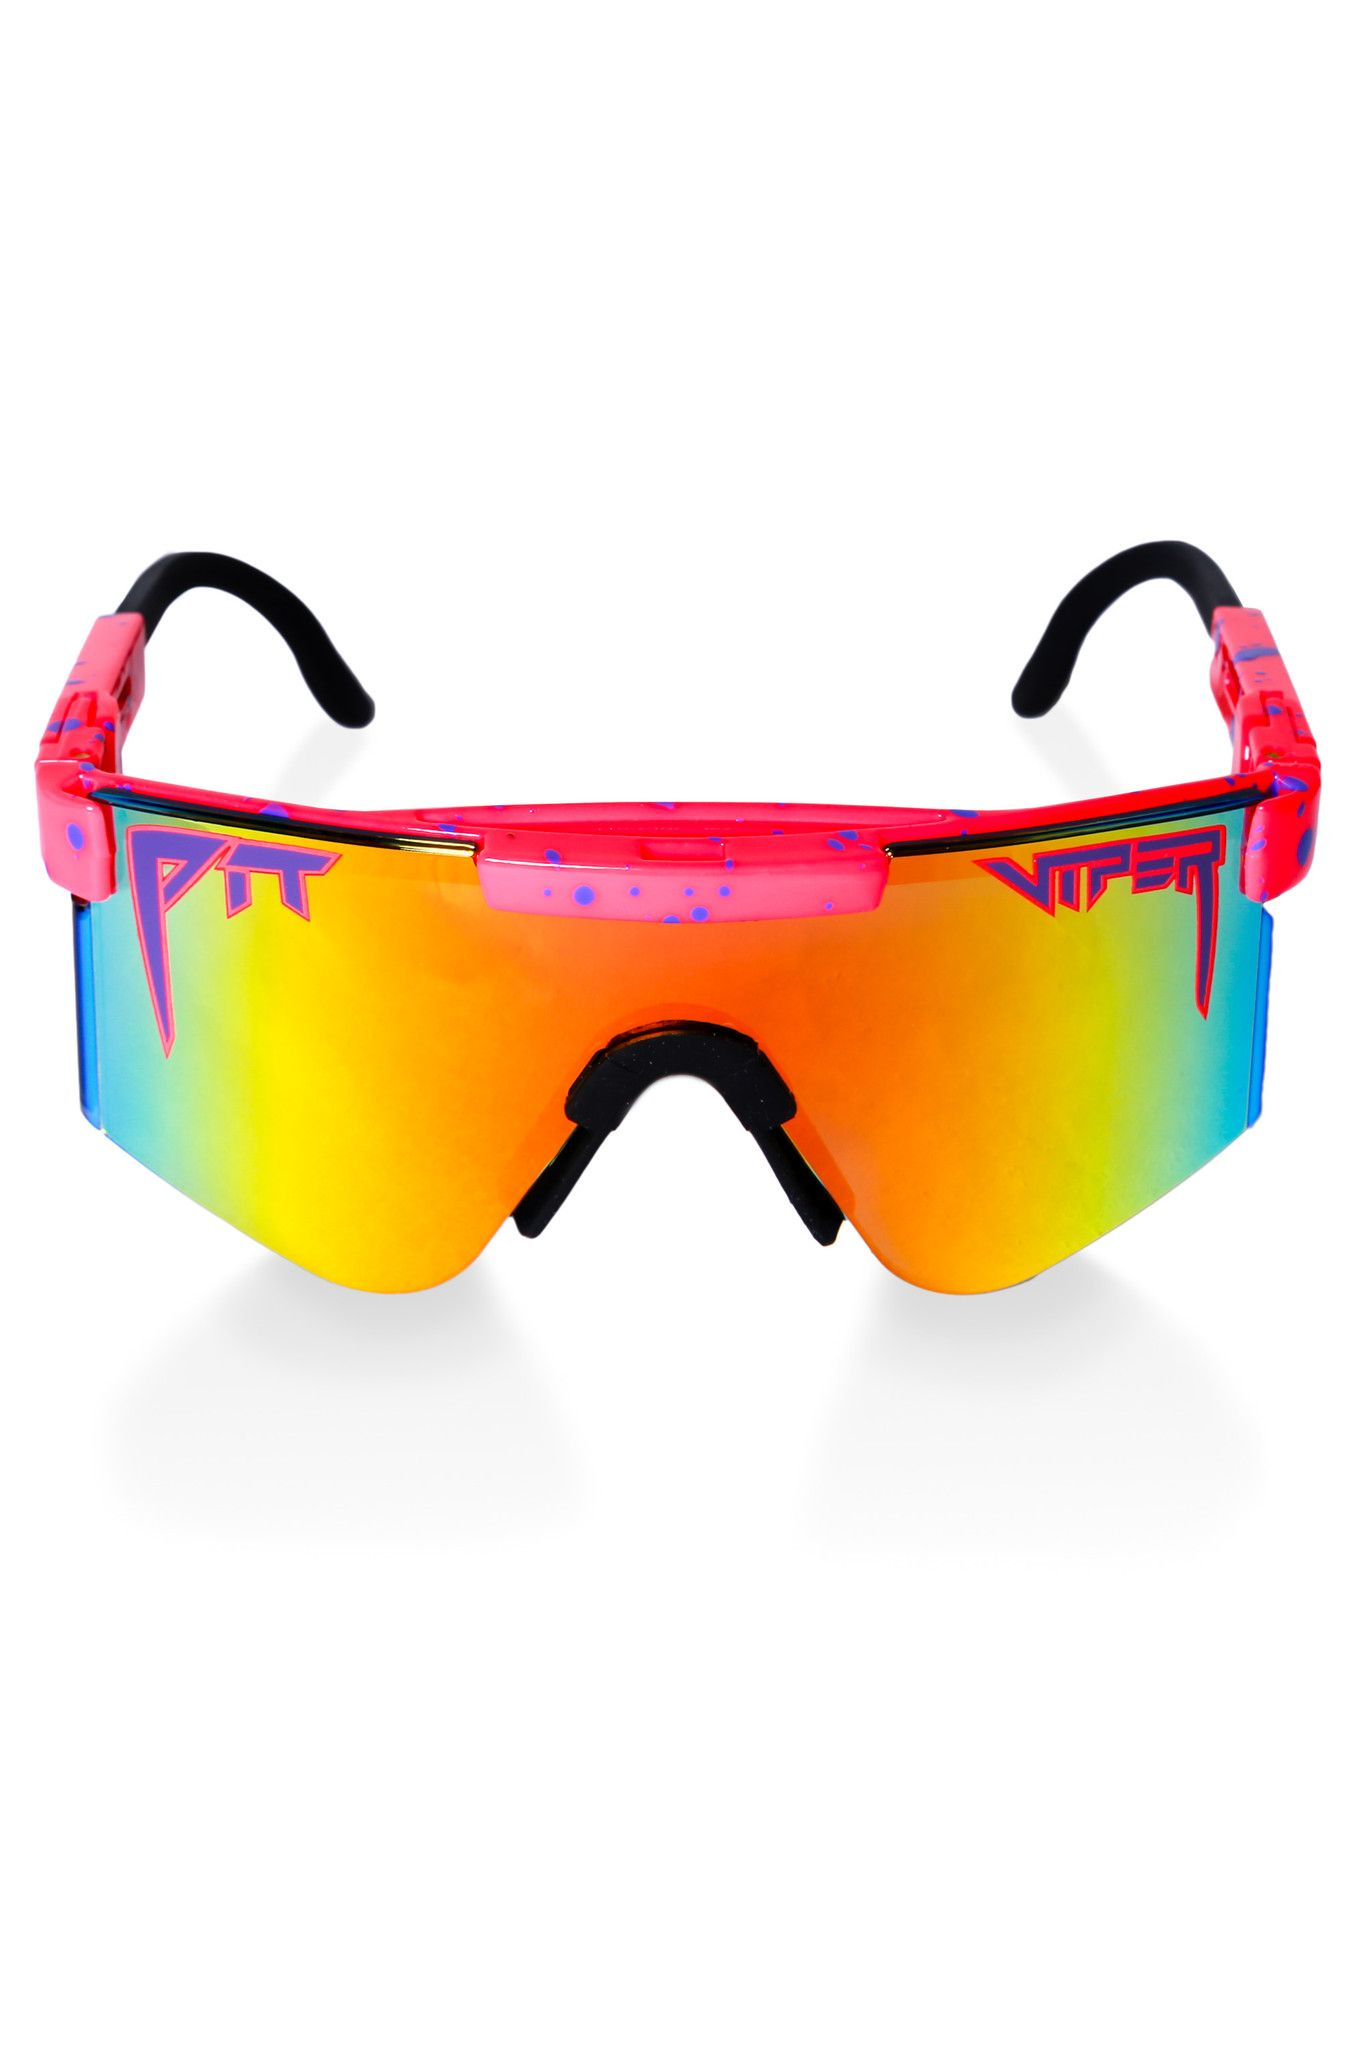 The Radicals Pink Mirrored Lens Pit Viper Sunglasses Pit Viper Sunglasses Pit Viper Oakley Sunglasses